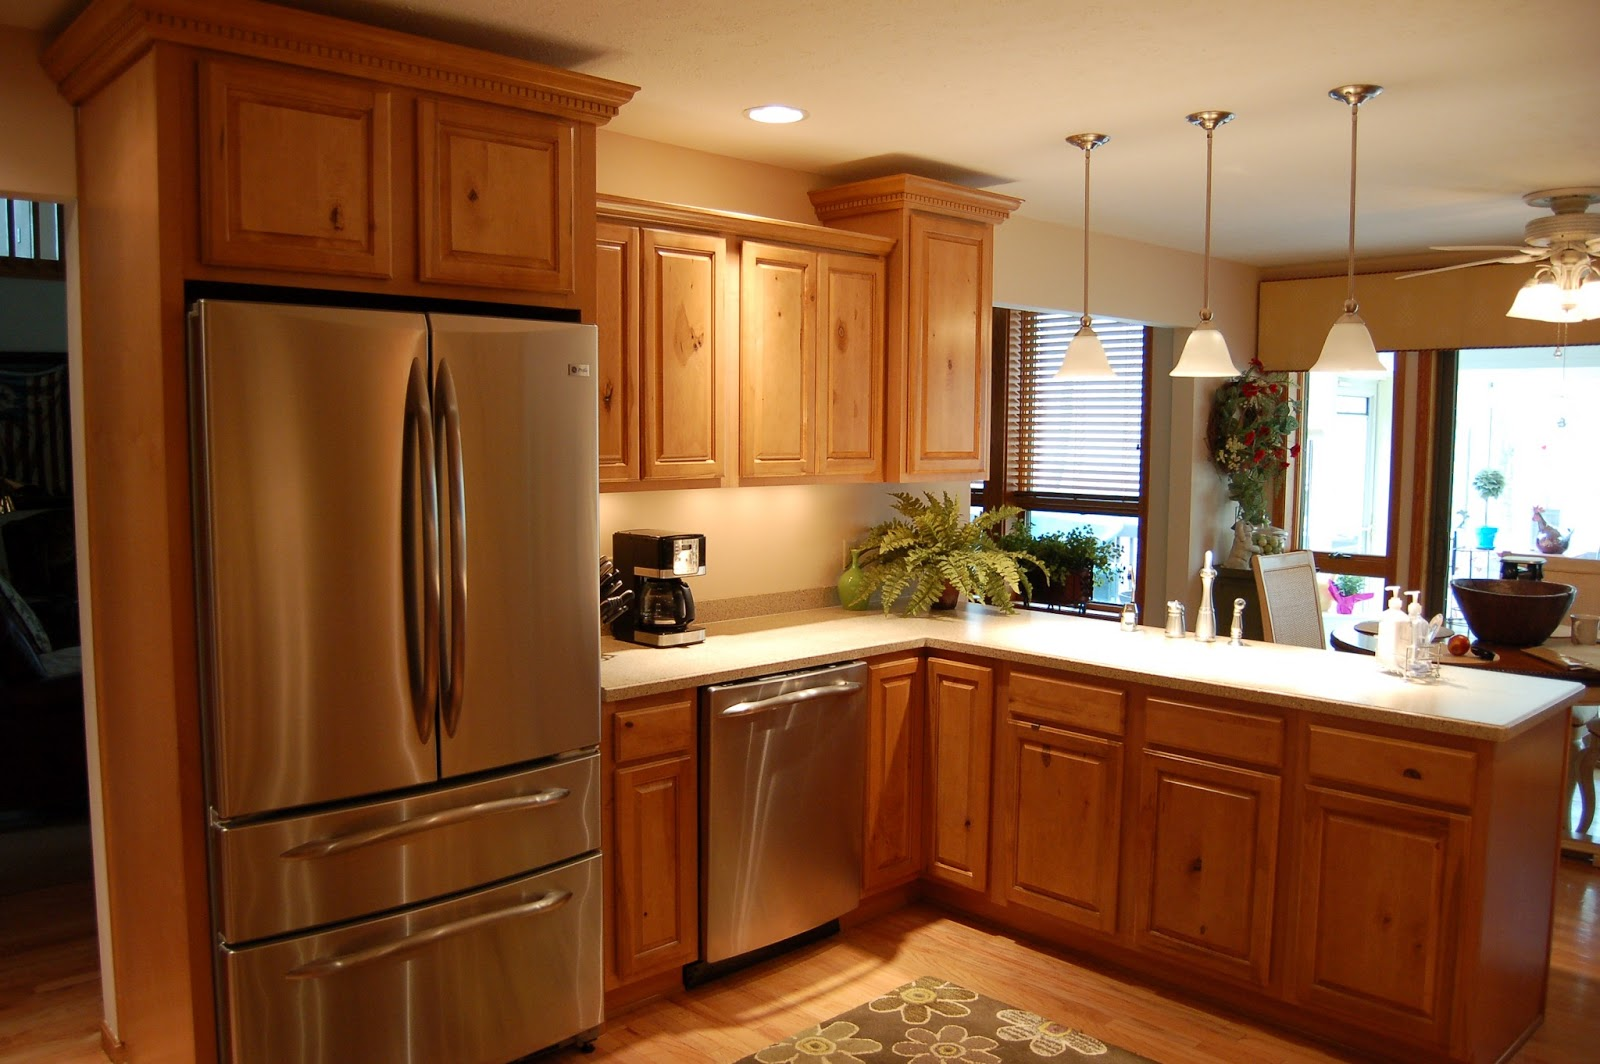 Chicago Kitchen Remodeling Ideas: Kitchen Remodeling Chicago on Kitchen Remodeling Ideas  id=46553